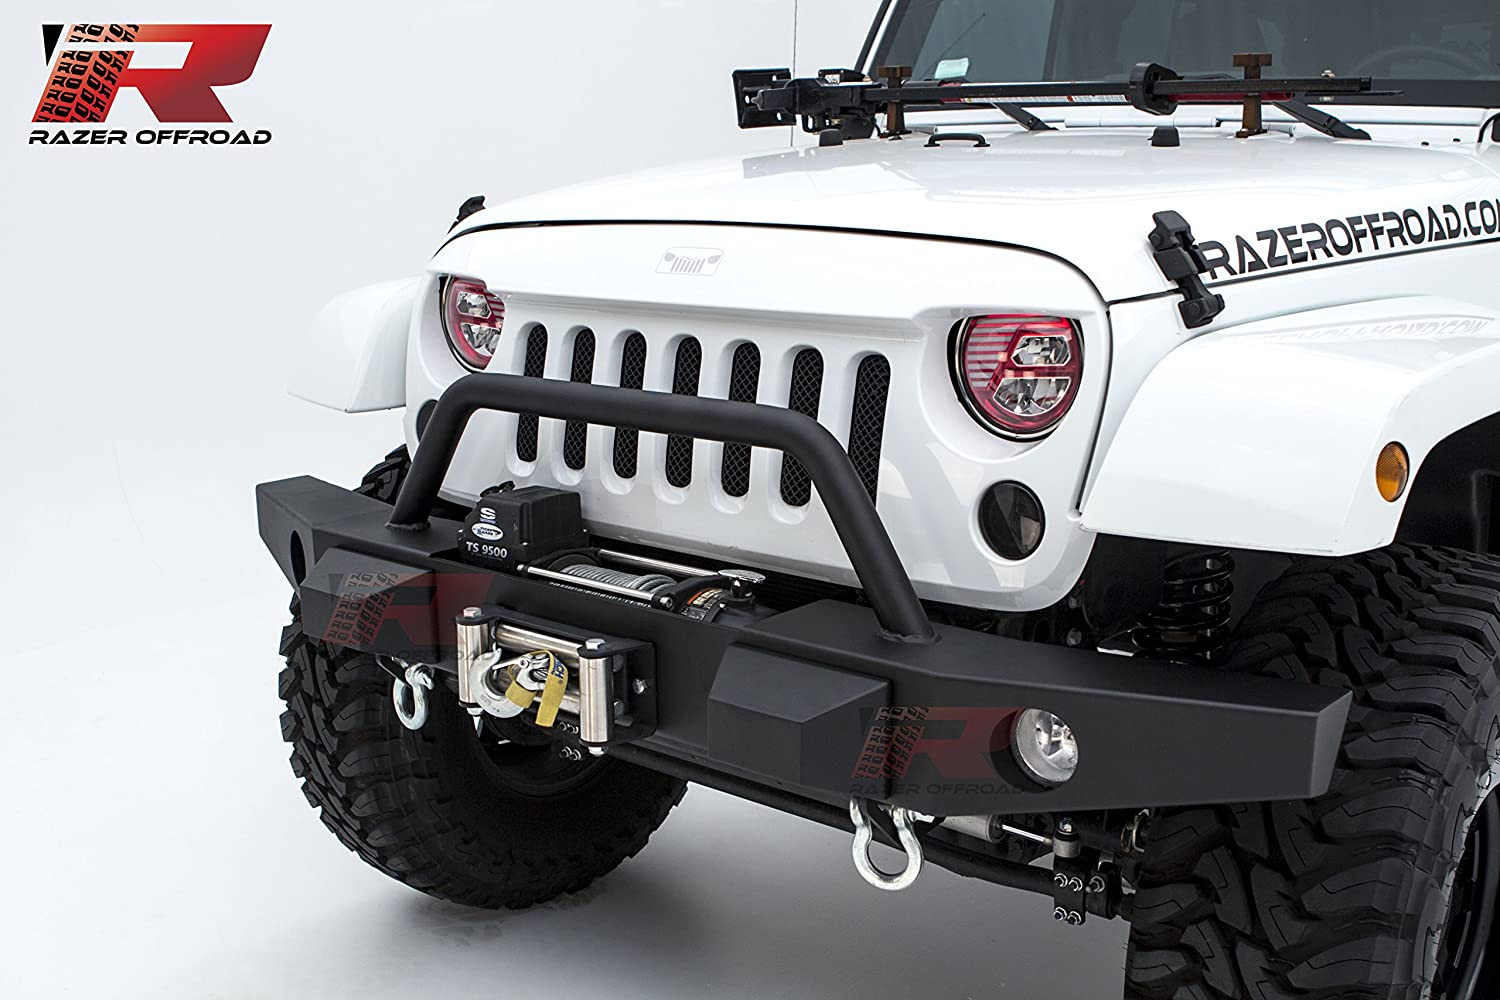 Black Razer Auto Black Textured Rock Crawler Front Bumper With Fog Lights Hole /& 2x D-Ring /& Winch Plate for 07-17 Jeep Wrangler JK